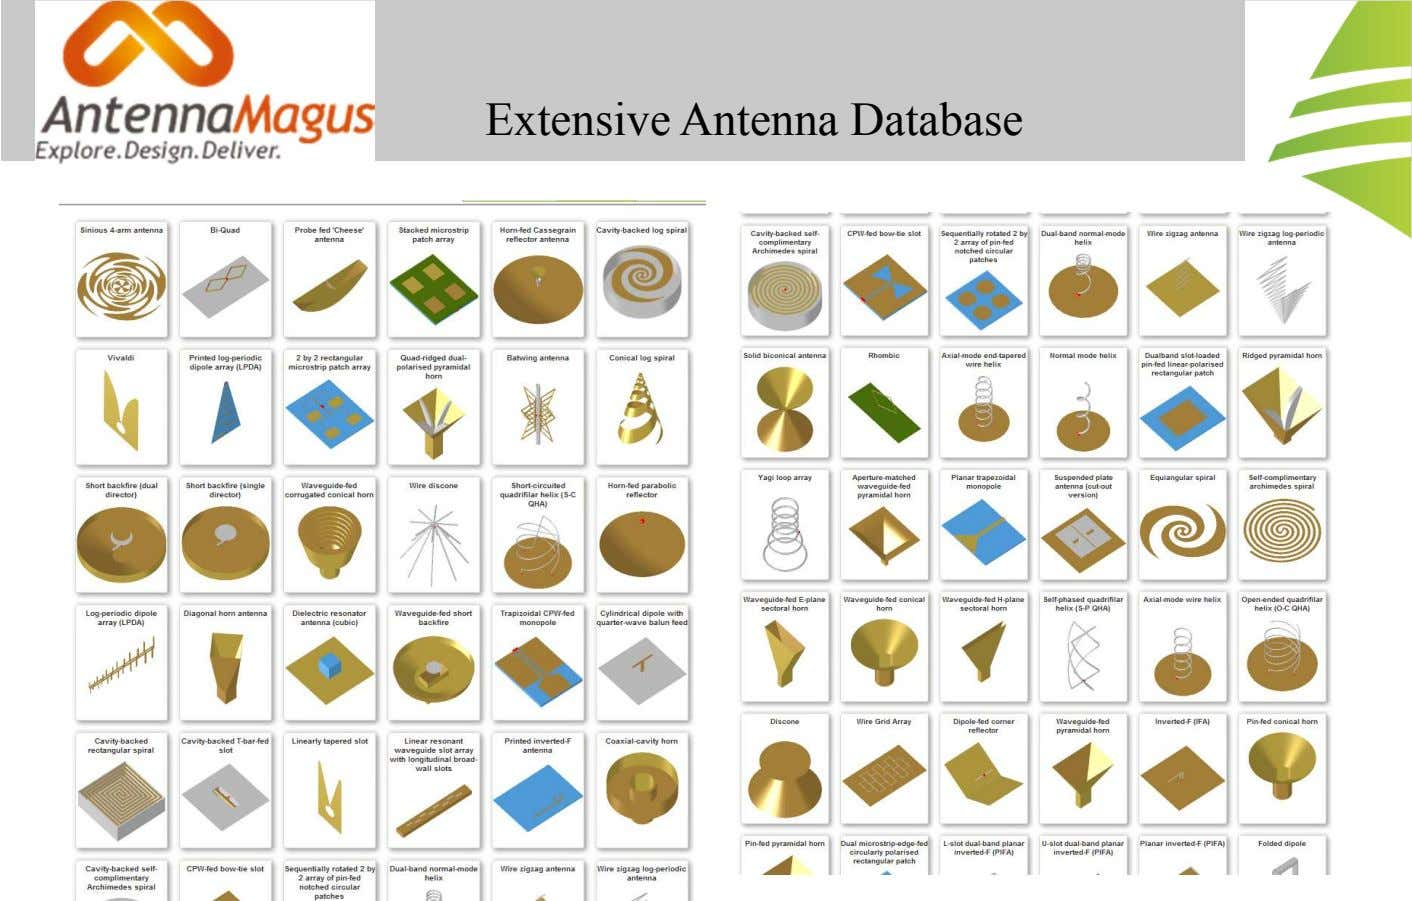 Extensive Antenna Database